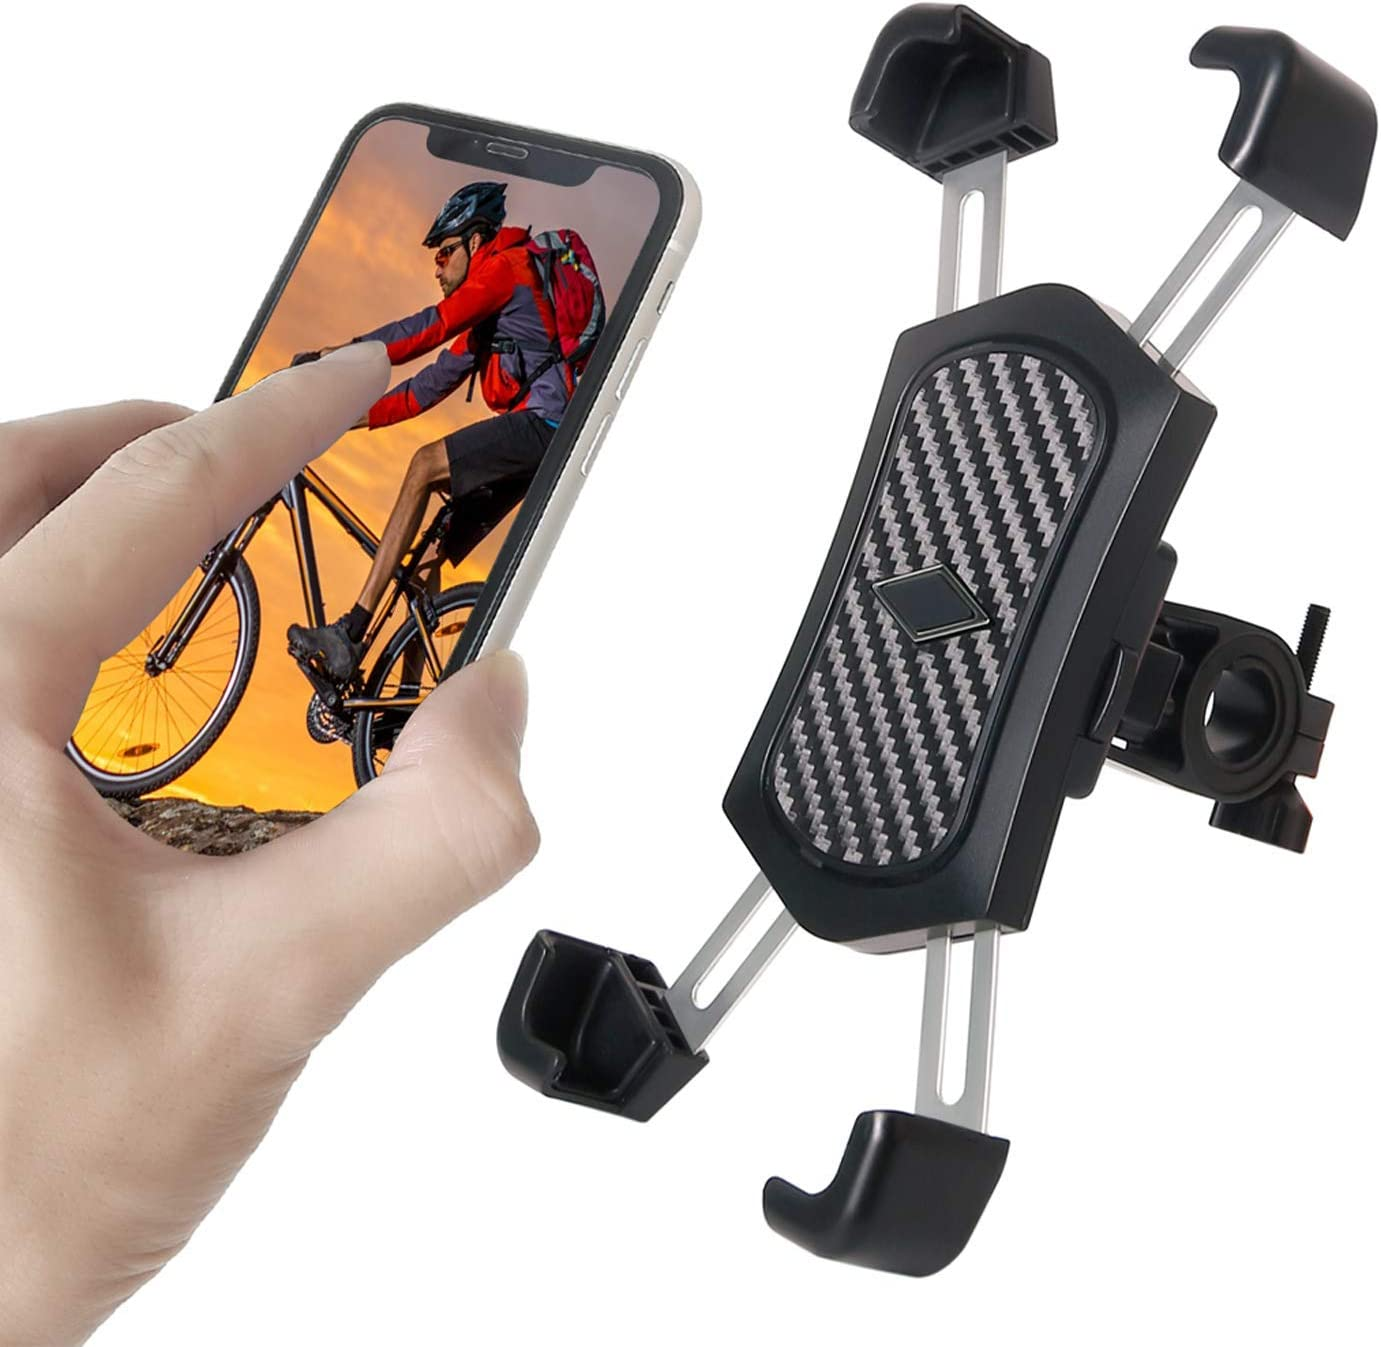 Bike Phone Mount, Anti Shake and Stable 360° Rotation Bicycle Accessories Motorcycle Phone Holder Motorbike Handlebars Adjustable Fits for iPhone Samsung Android GPS Other Devices (Black)